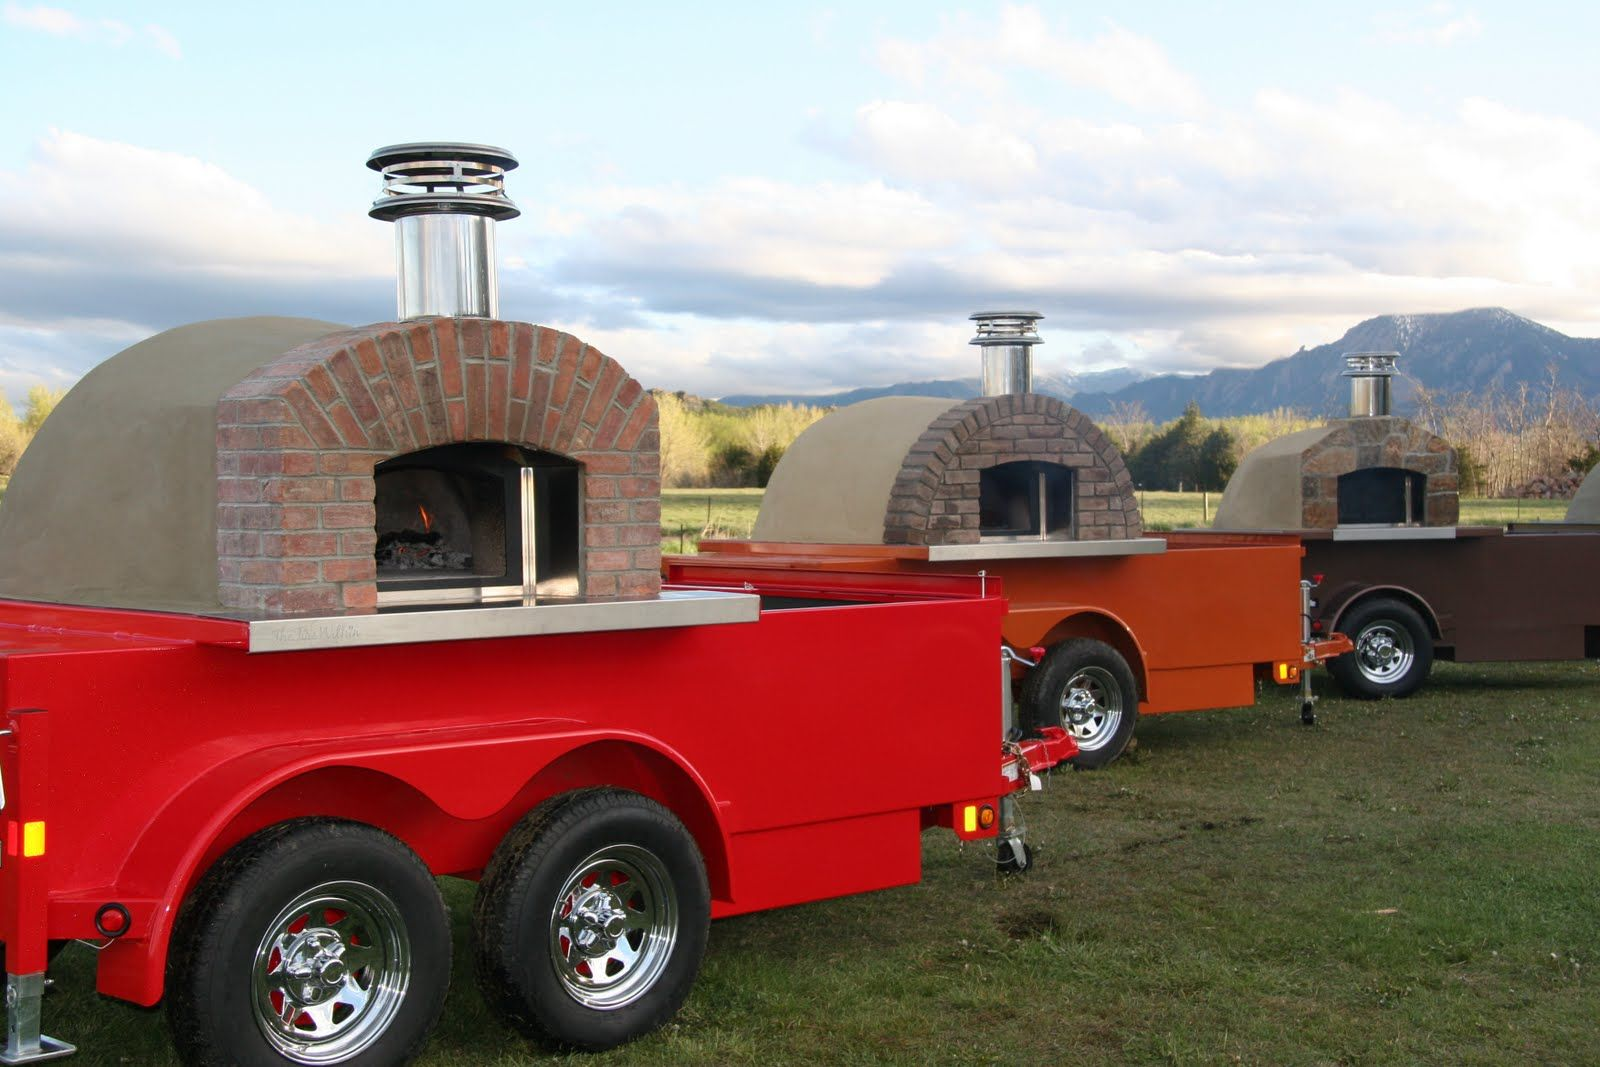 Portable wood fired pizza oven for sale - Portable Pizza Ovens From The Passion 4 Pizza Website